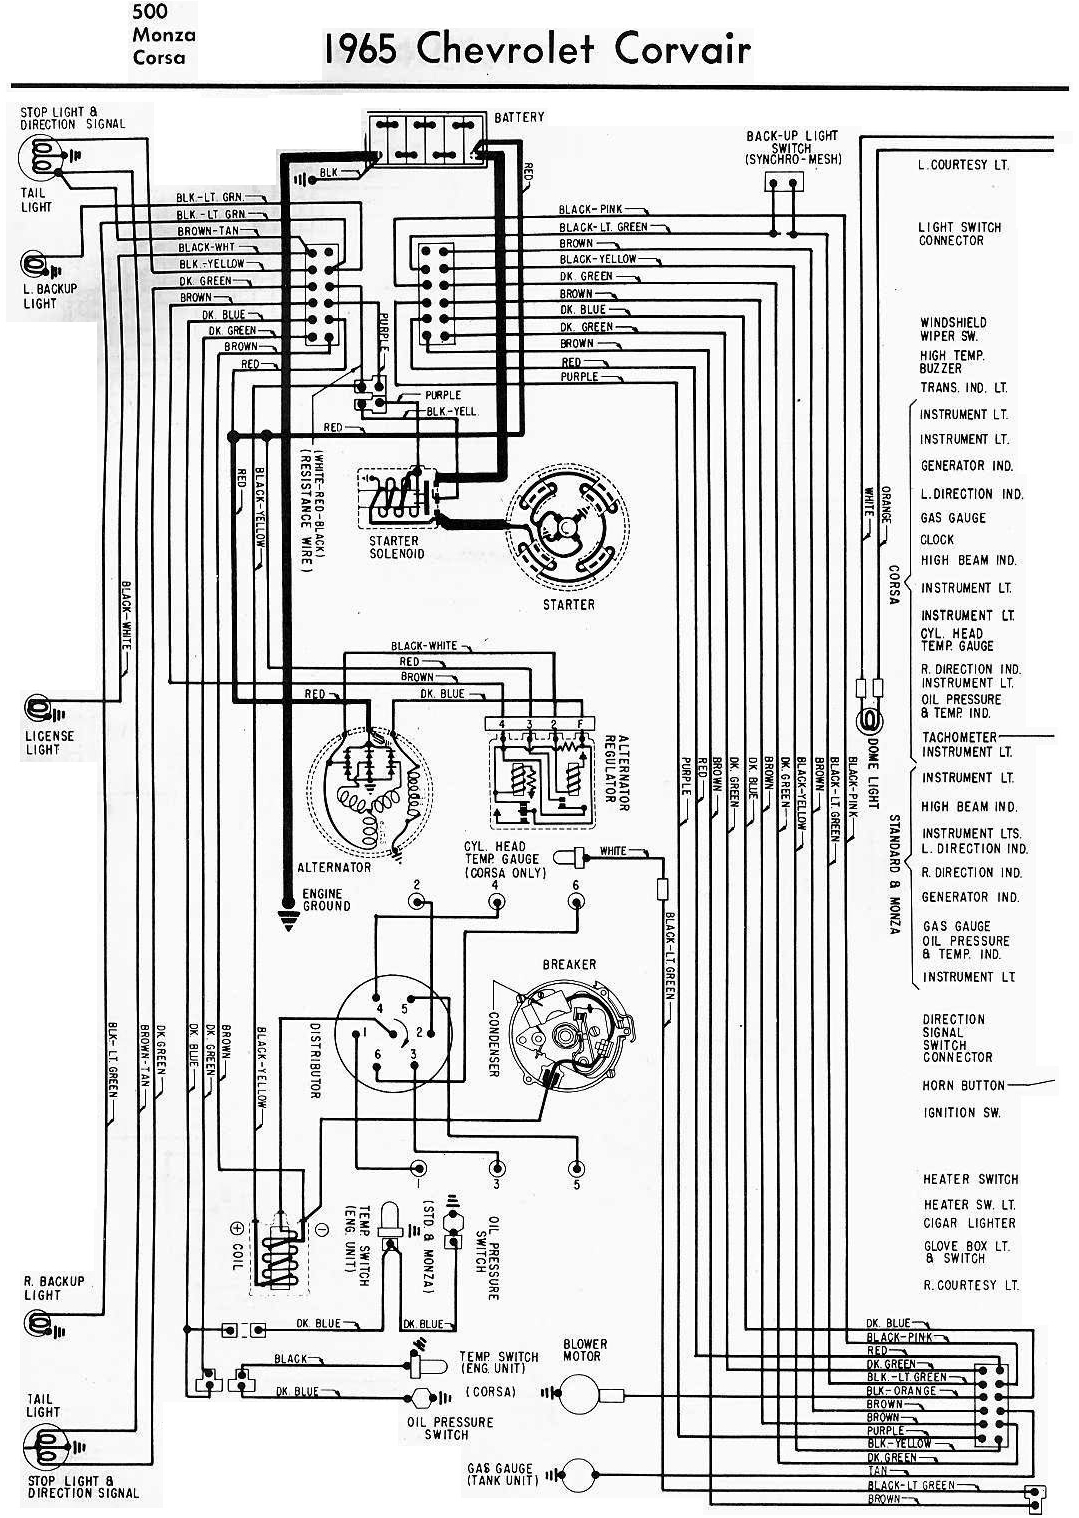 68 Corvair Wiring Diagram FULL HD Version Wiring Diagram - LOTI-DIAGRAM .EDITIONS-DELPIERRE.FRDiagram Database And Images